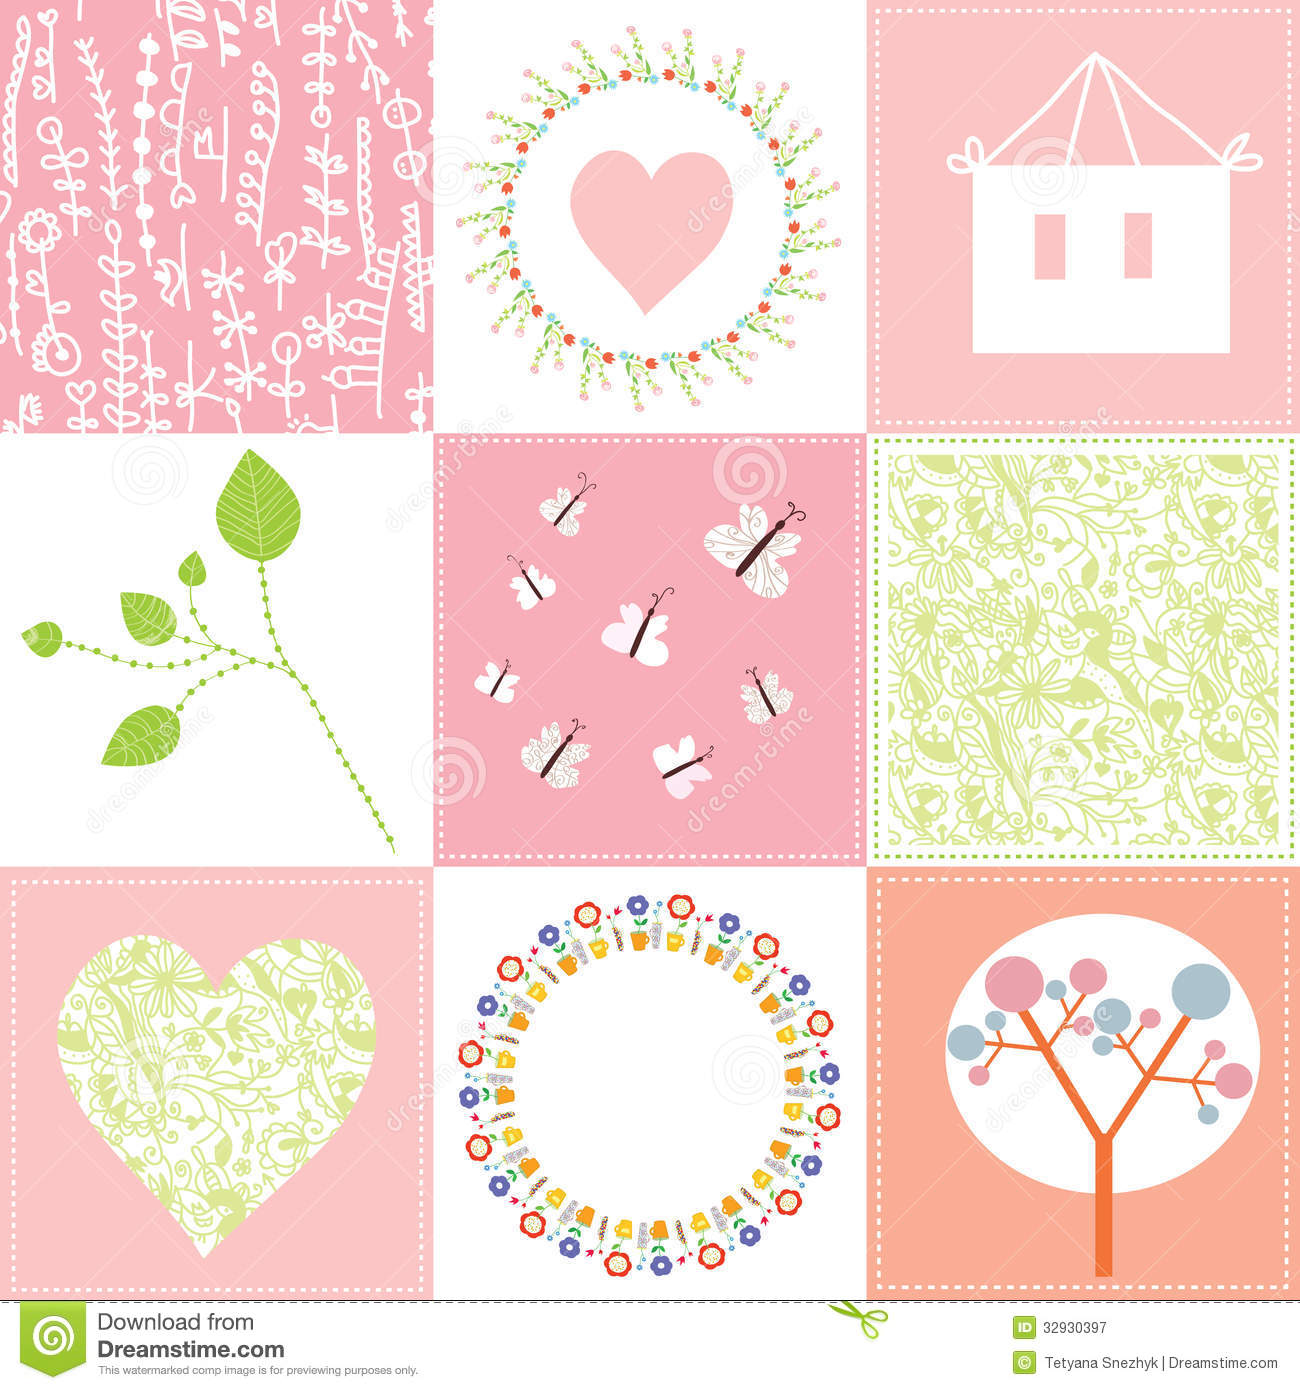 Designs Patterns For Cards | www.pixshark.com - Images ...